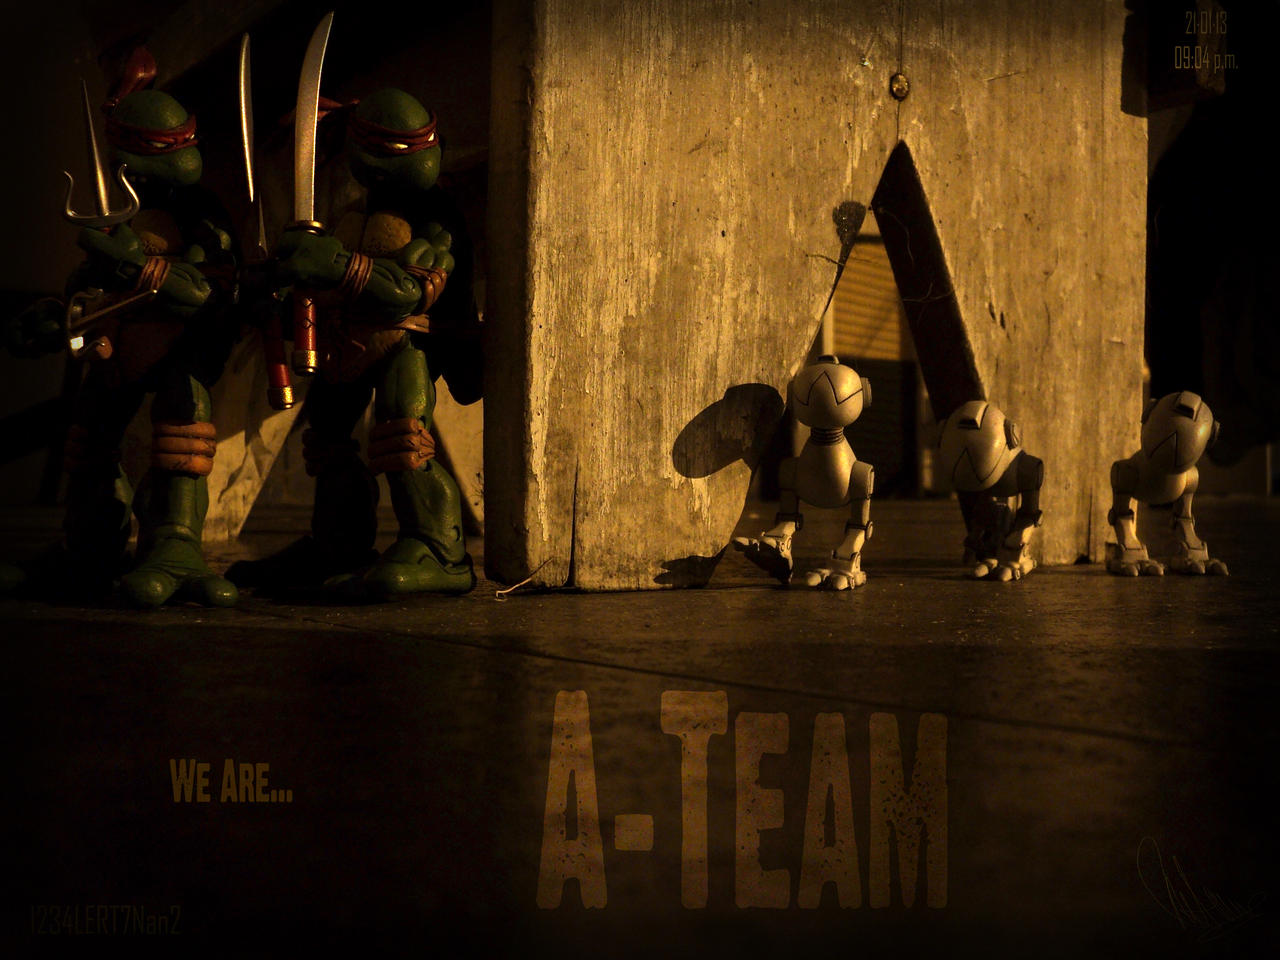 We Are...A-TEAM by 1234LERT7Nan2